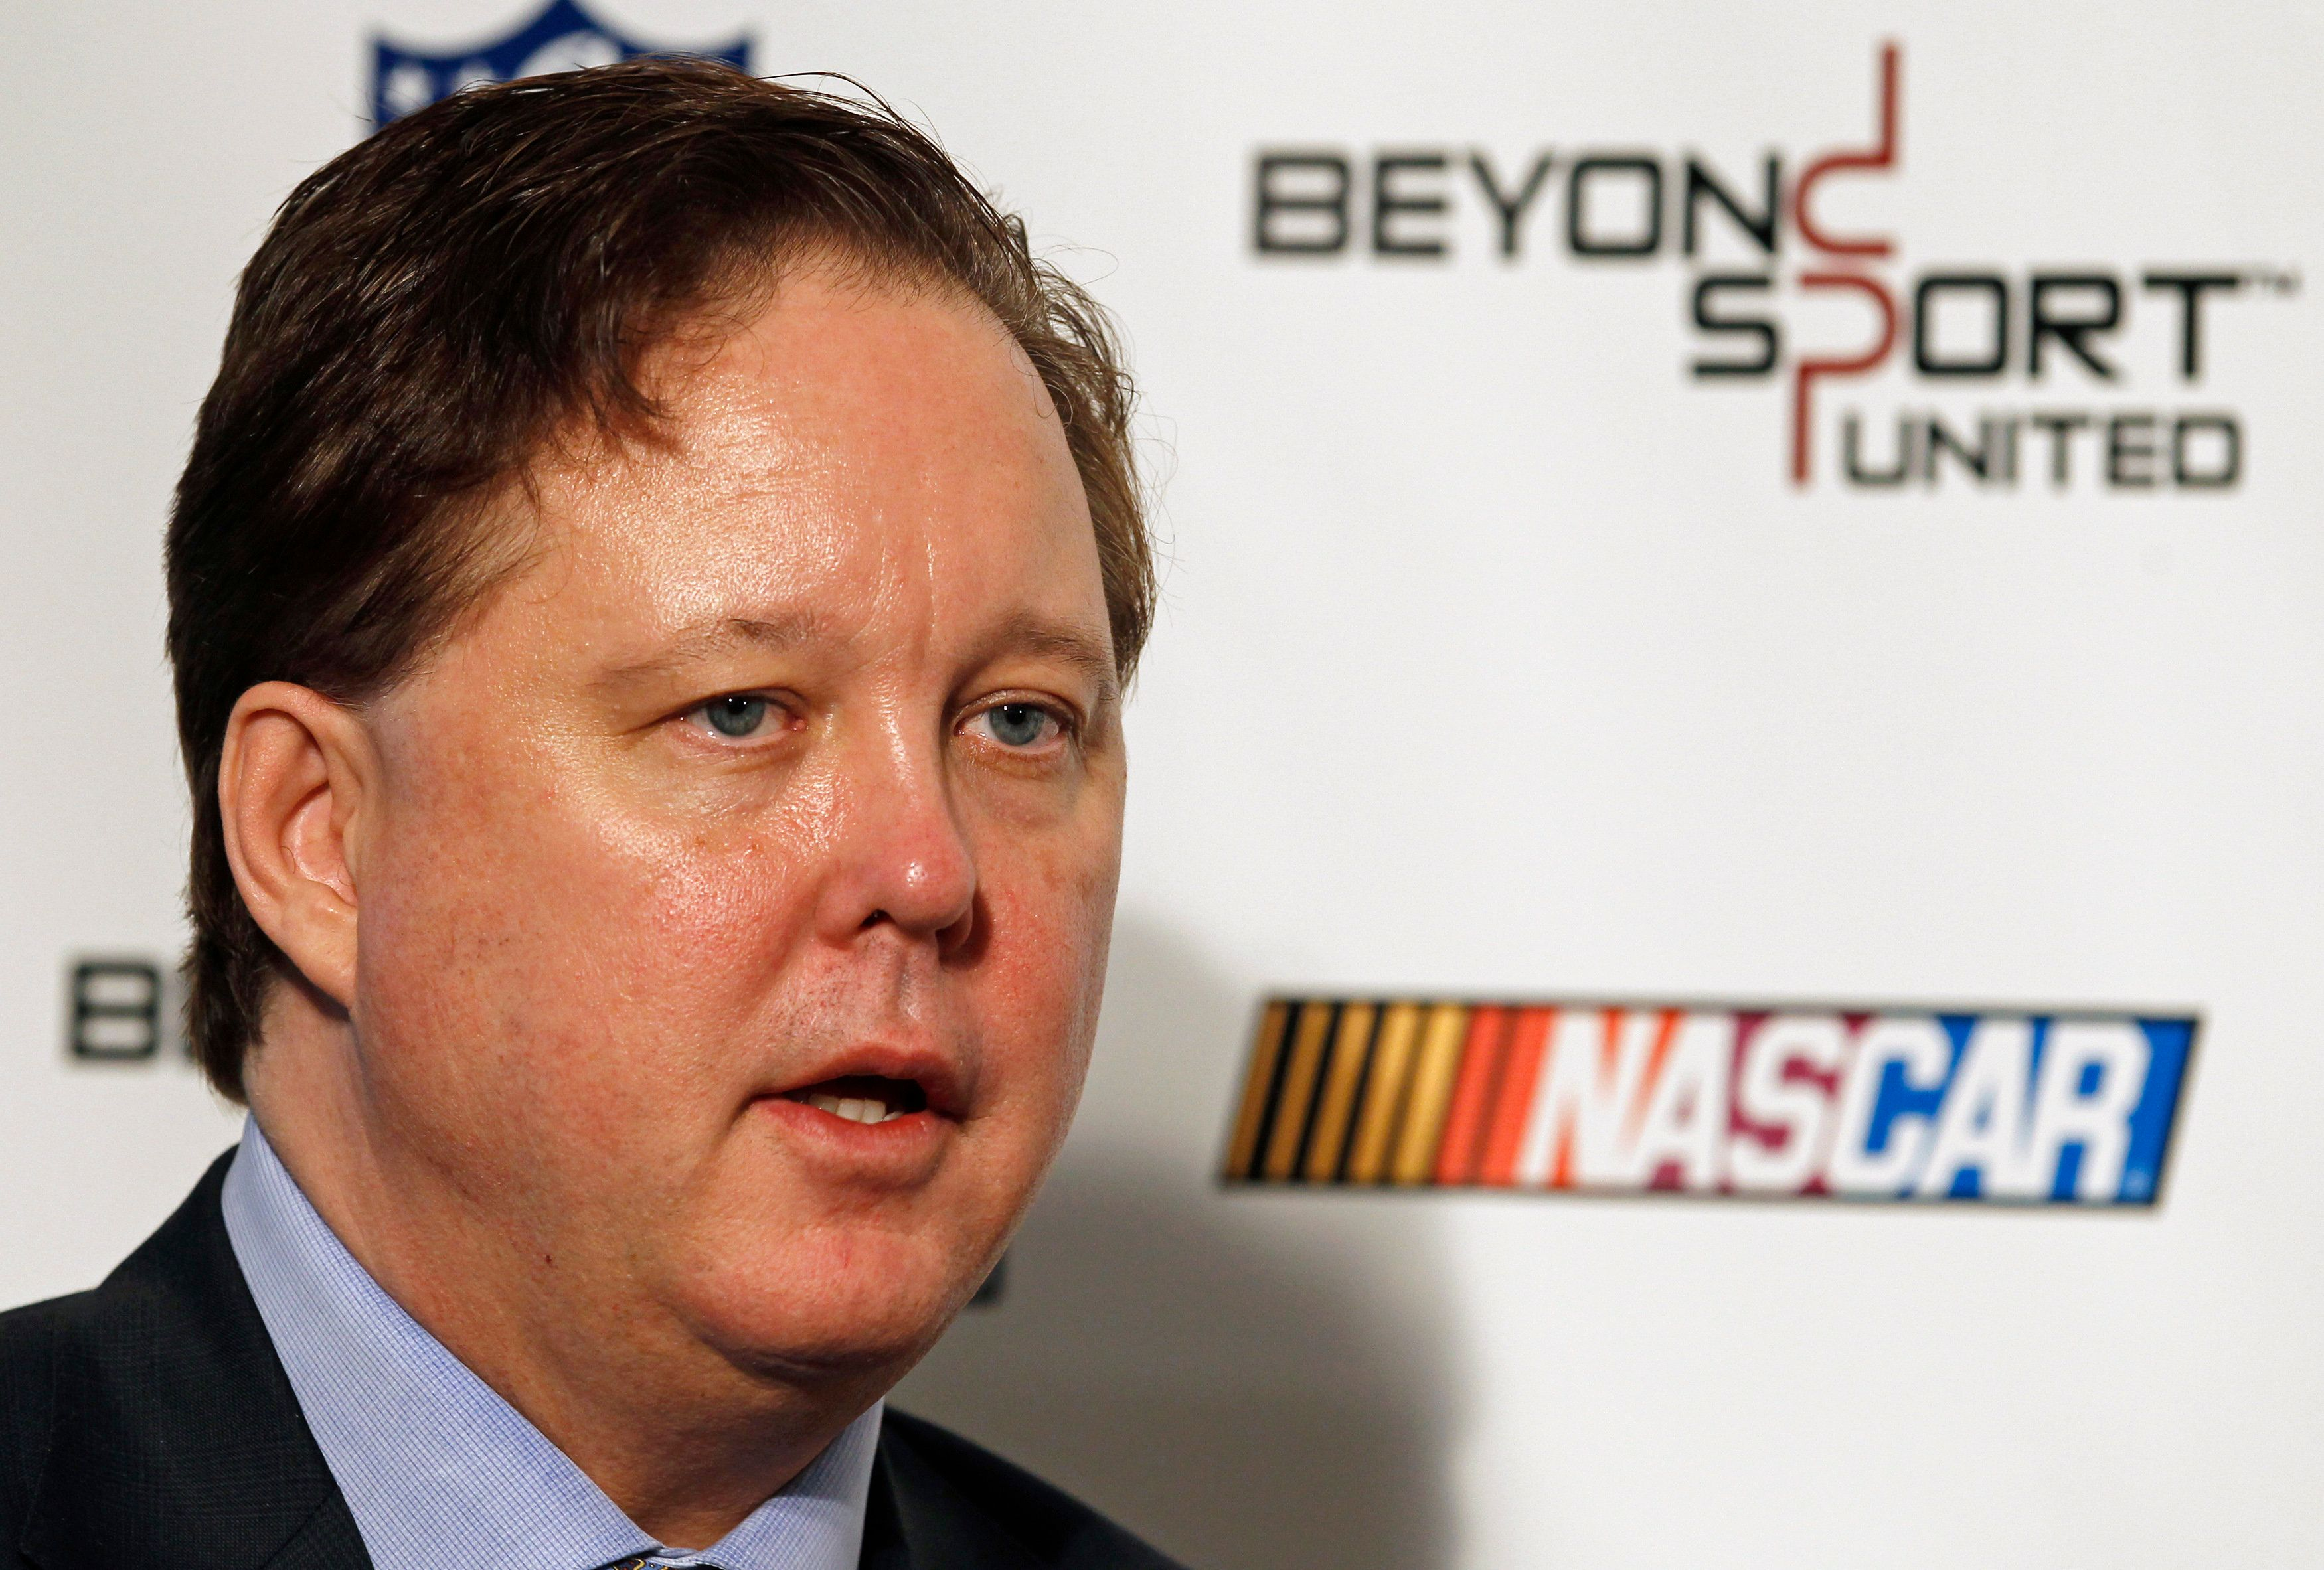 Brian France, chairman and chief executive of NASCAR, speaks during the Beyond Sport United summit at Yankee Stadium in New York November 13, 2012. REUTERS/Adam Hunger  (UNITED STATES - Tags: SPORT MOTORSPORT HEADSHOT)